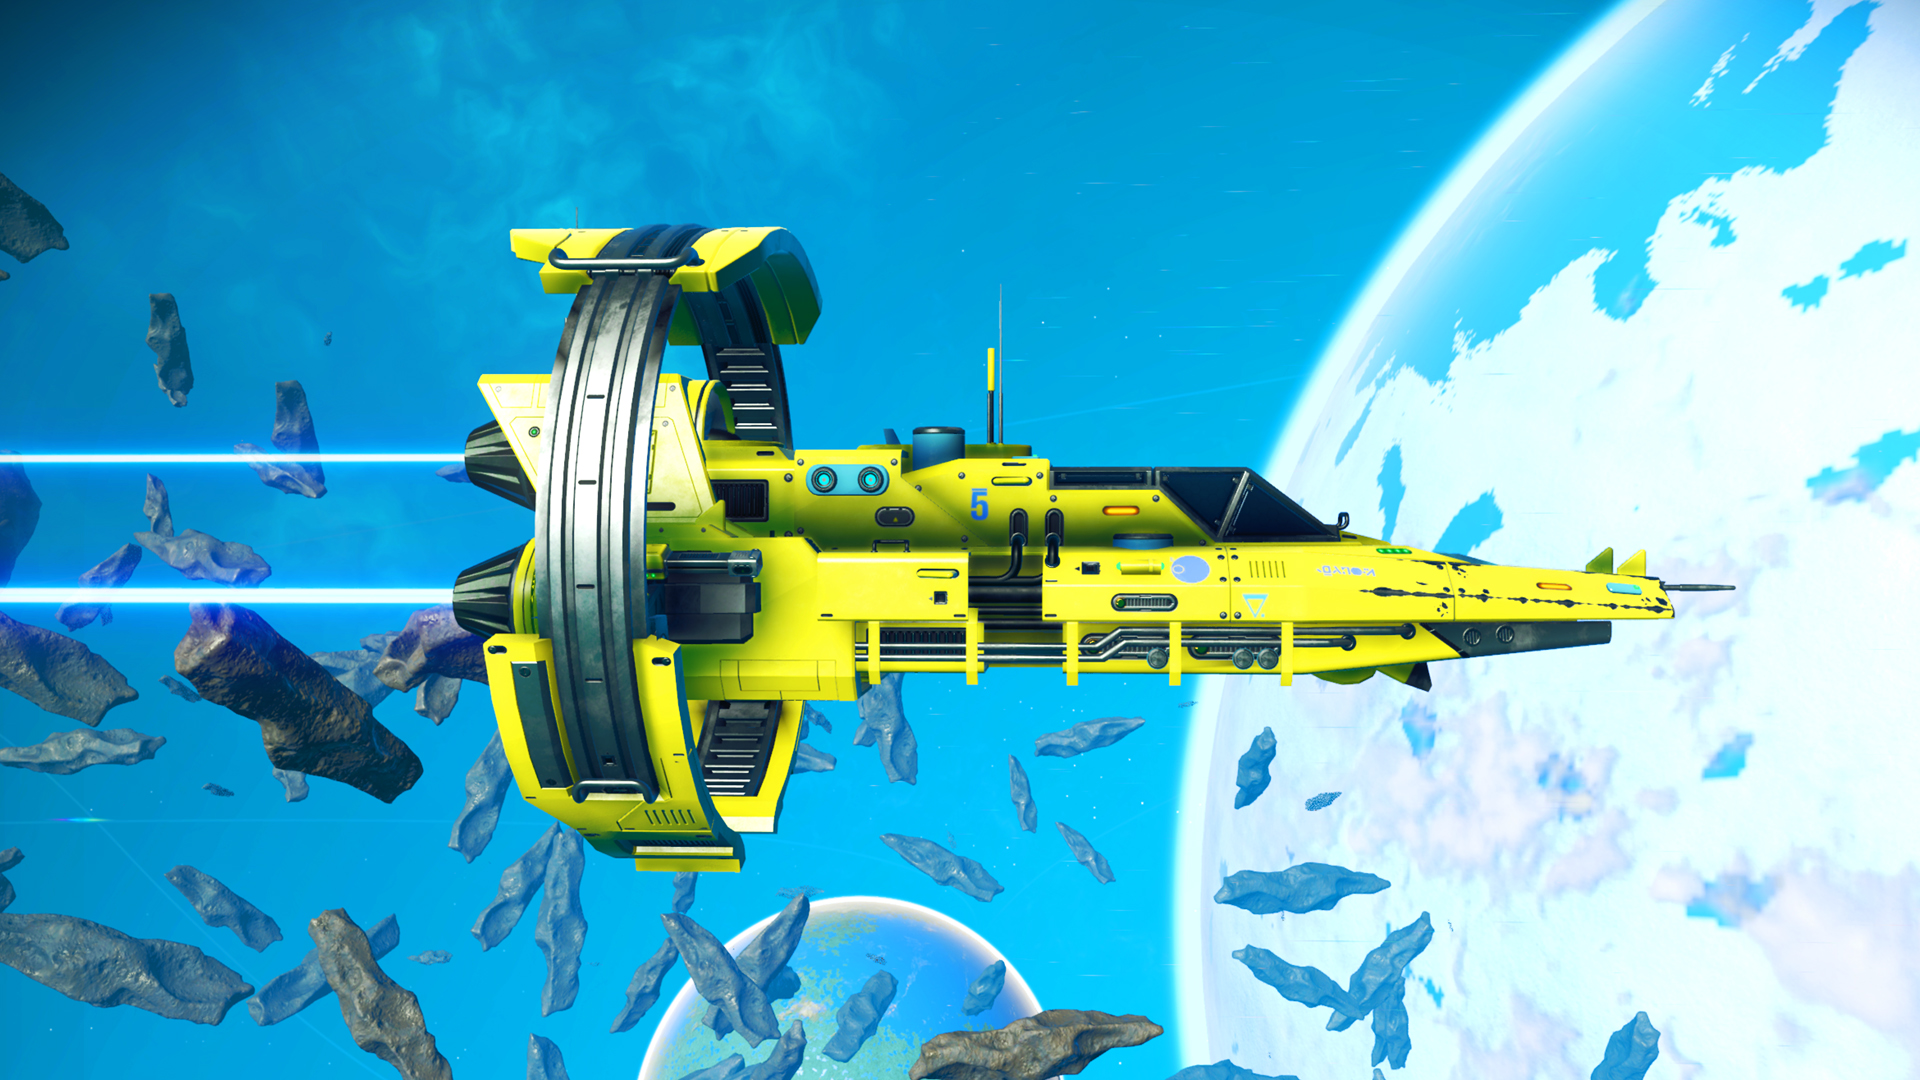 The coolest things I've seen in No Man's Sky Next so far